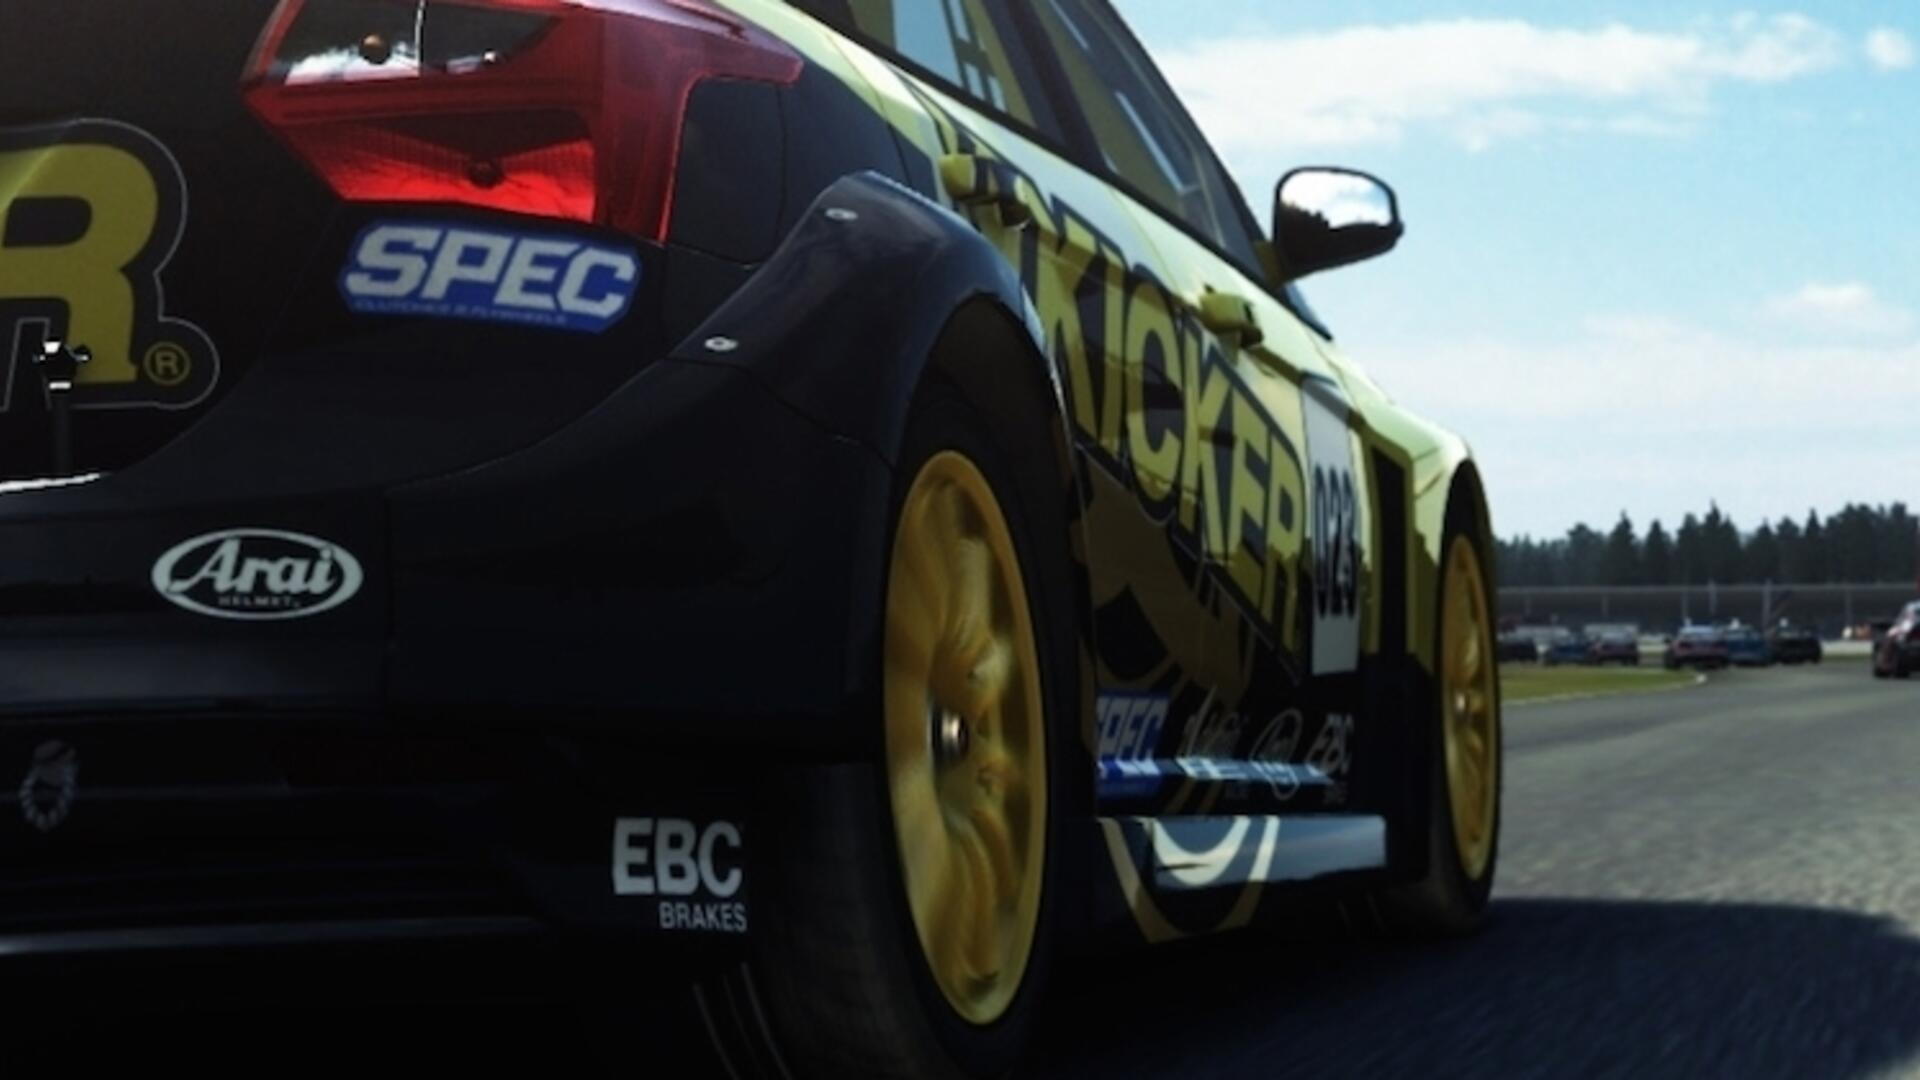 Codemasters' New GRID Title Won't Hit Next-Gen But Has PC as Lead Platform